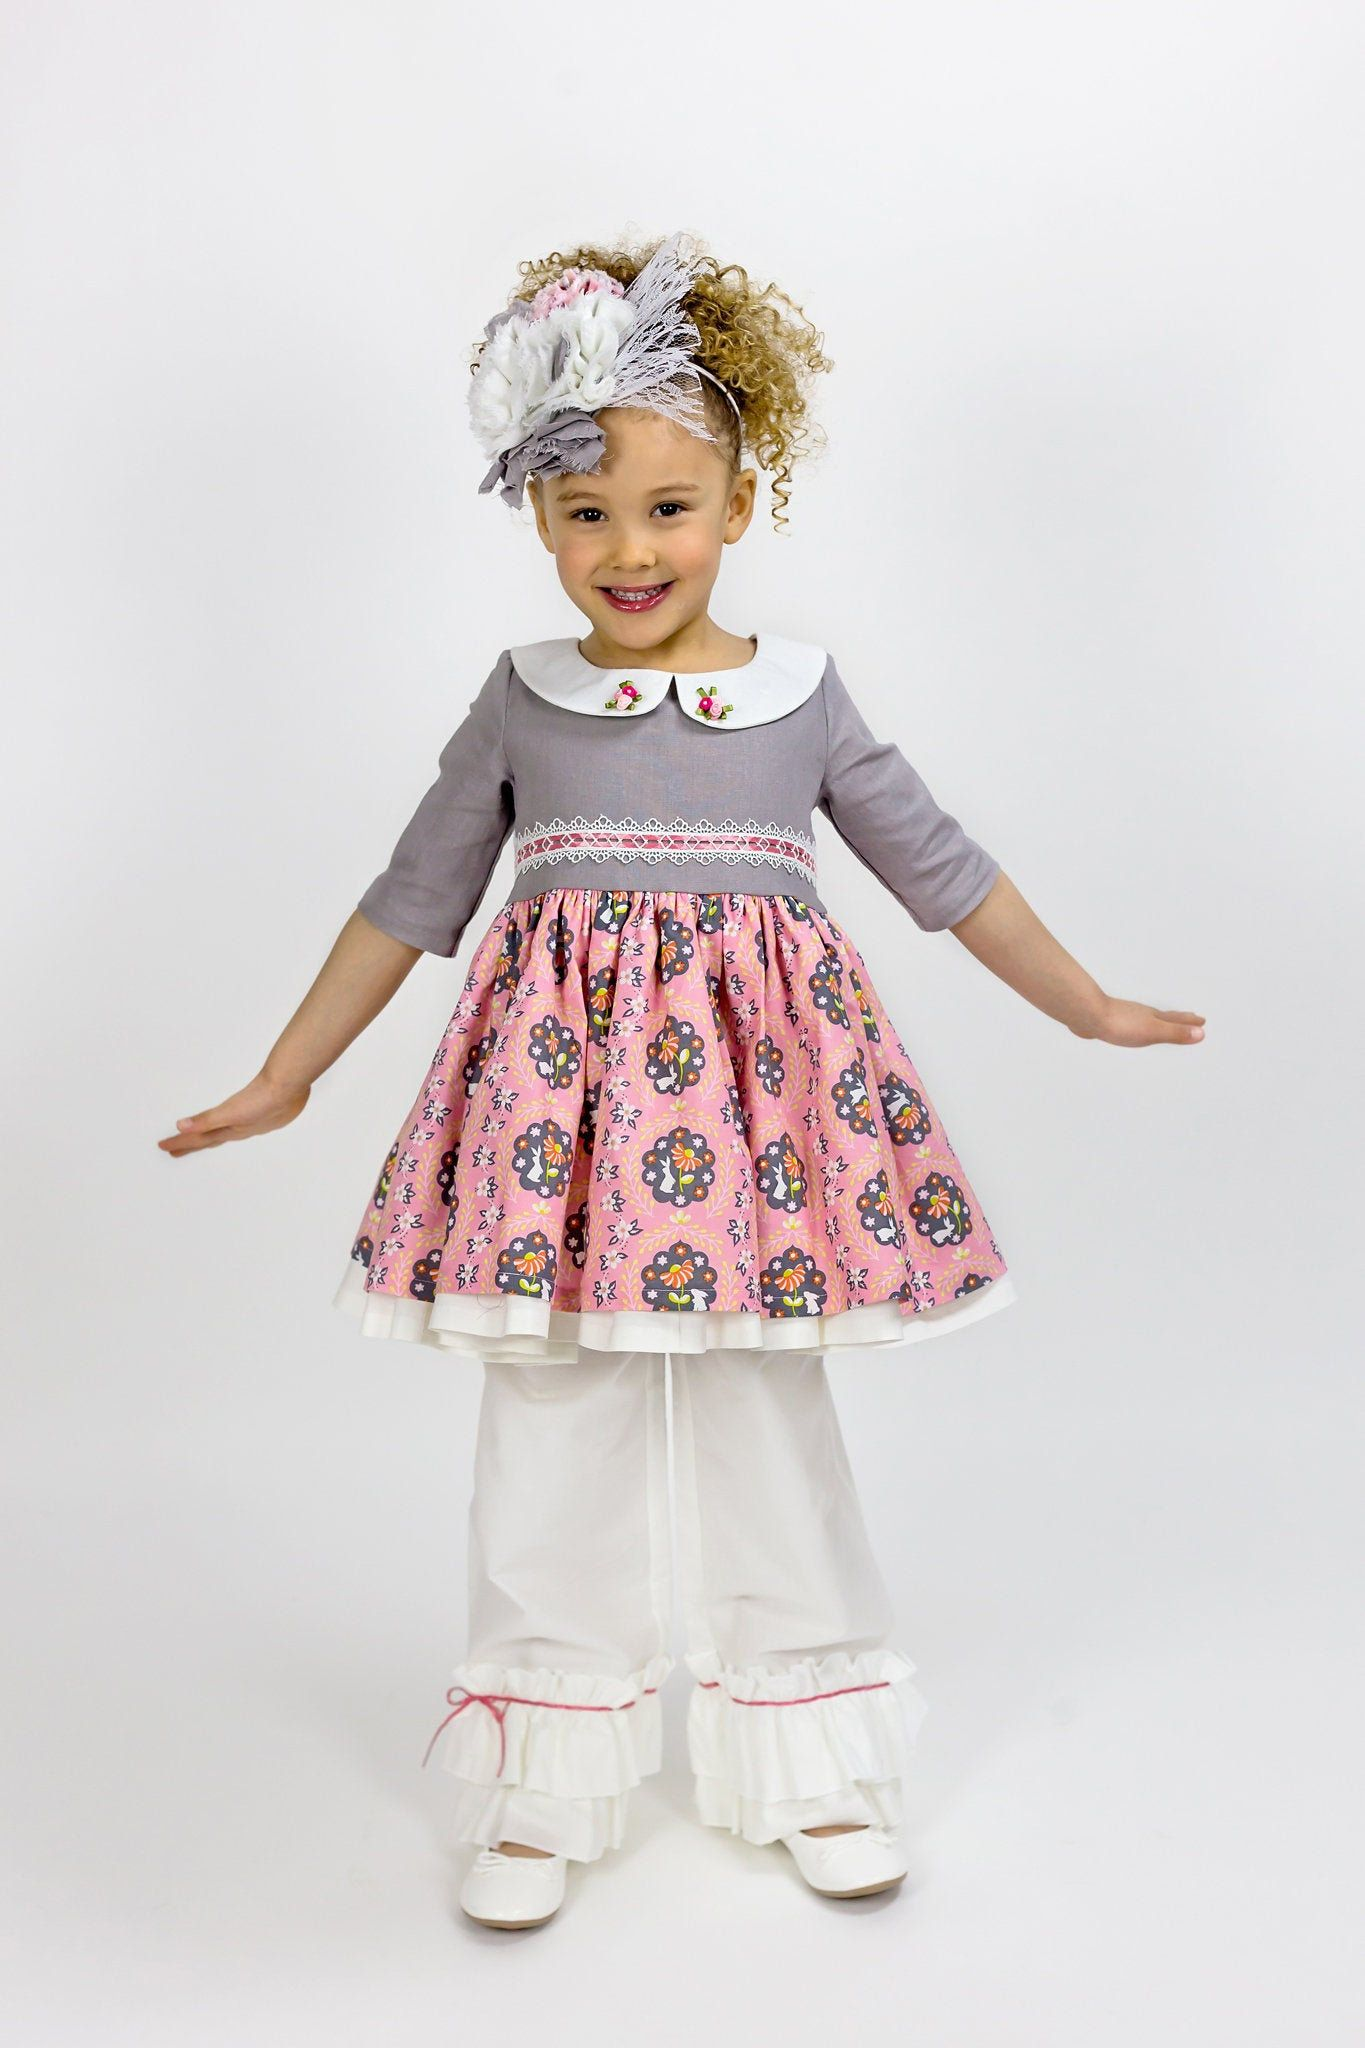 Photo of Pink Bunny Easter Dress for Girls, Peter Pan Collar, Linen and Cotton, Photo Shoots, Toddlers, Baby Girls, 1st Easter, Newborn to 10 years